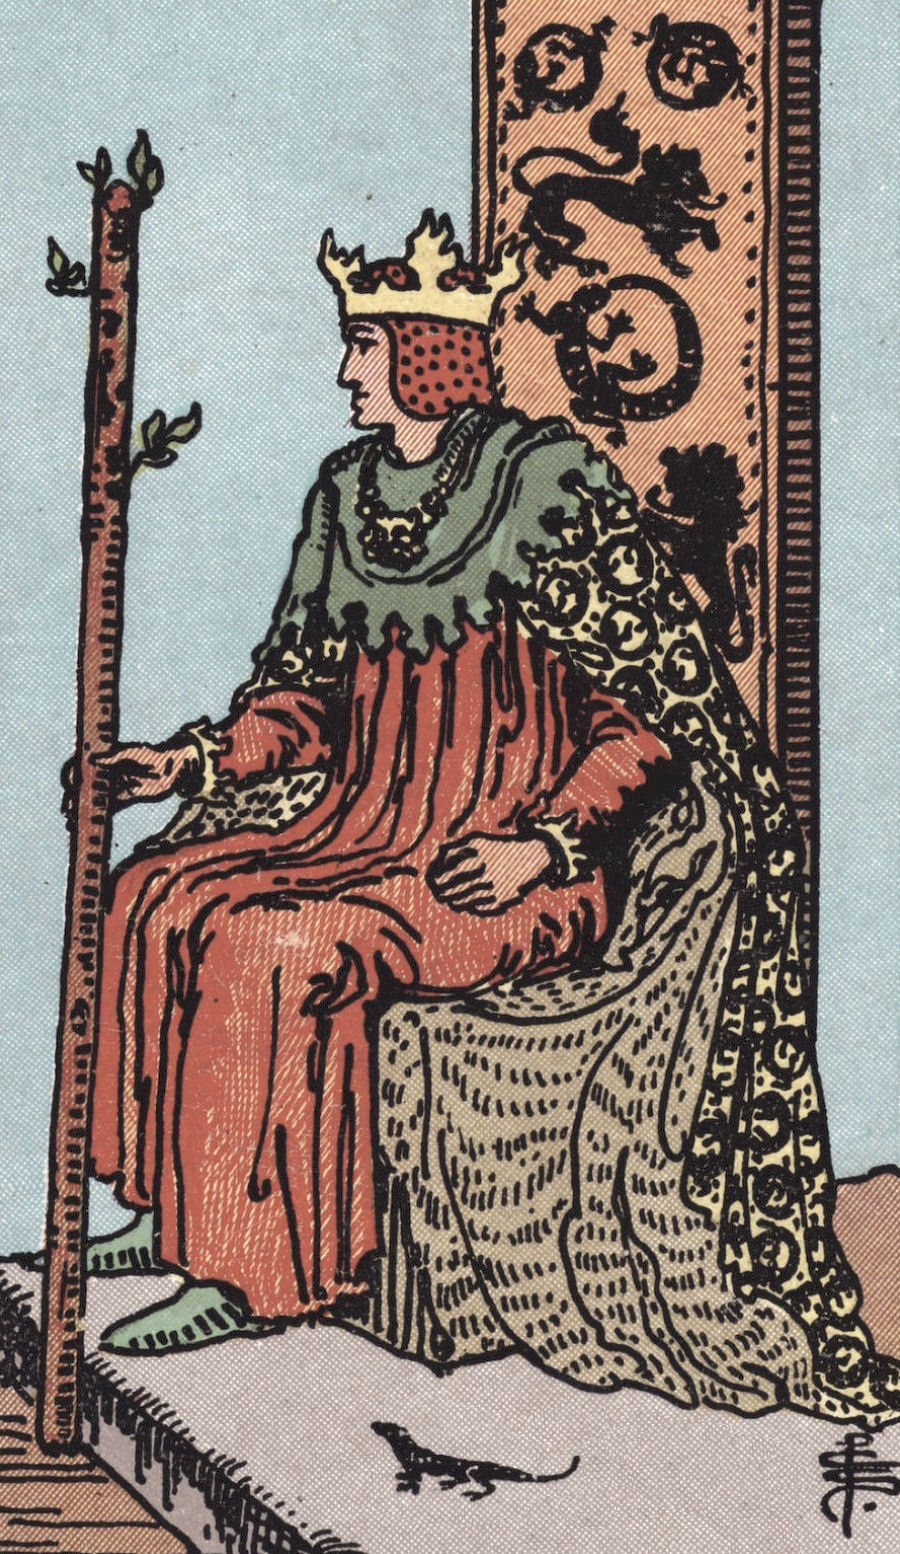 Rider Waite Smith King of Wands Tarot Card Meaning